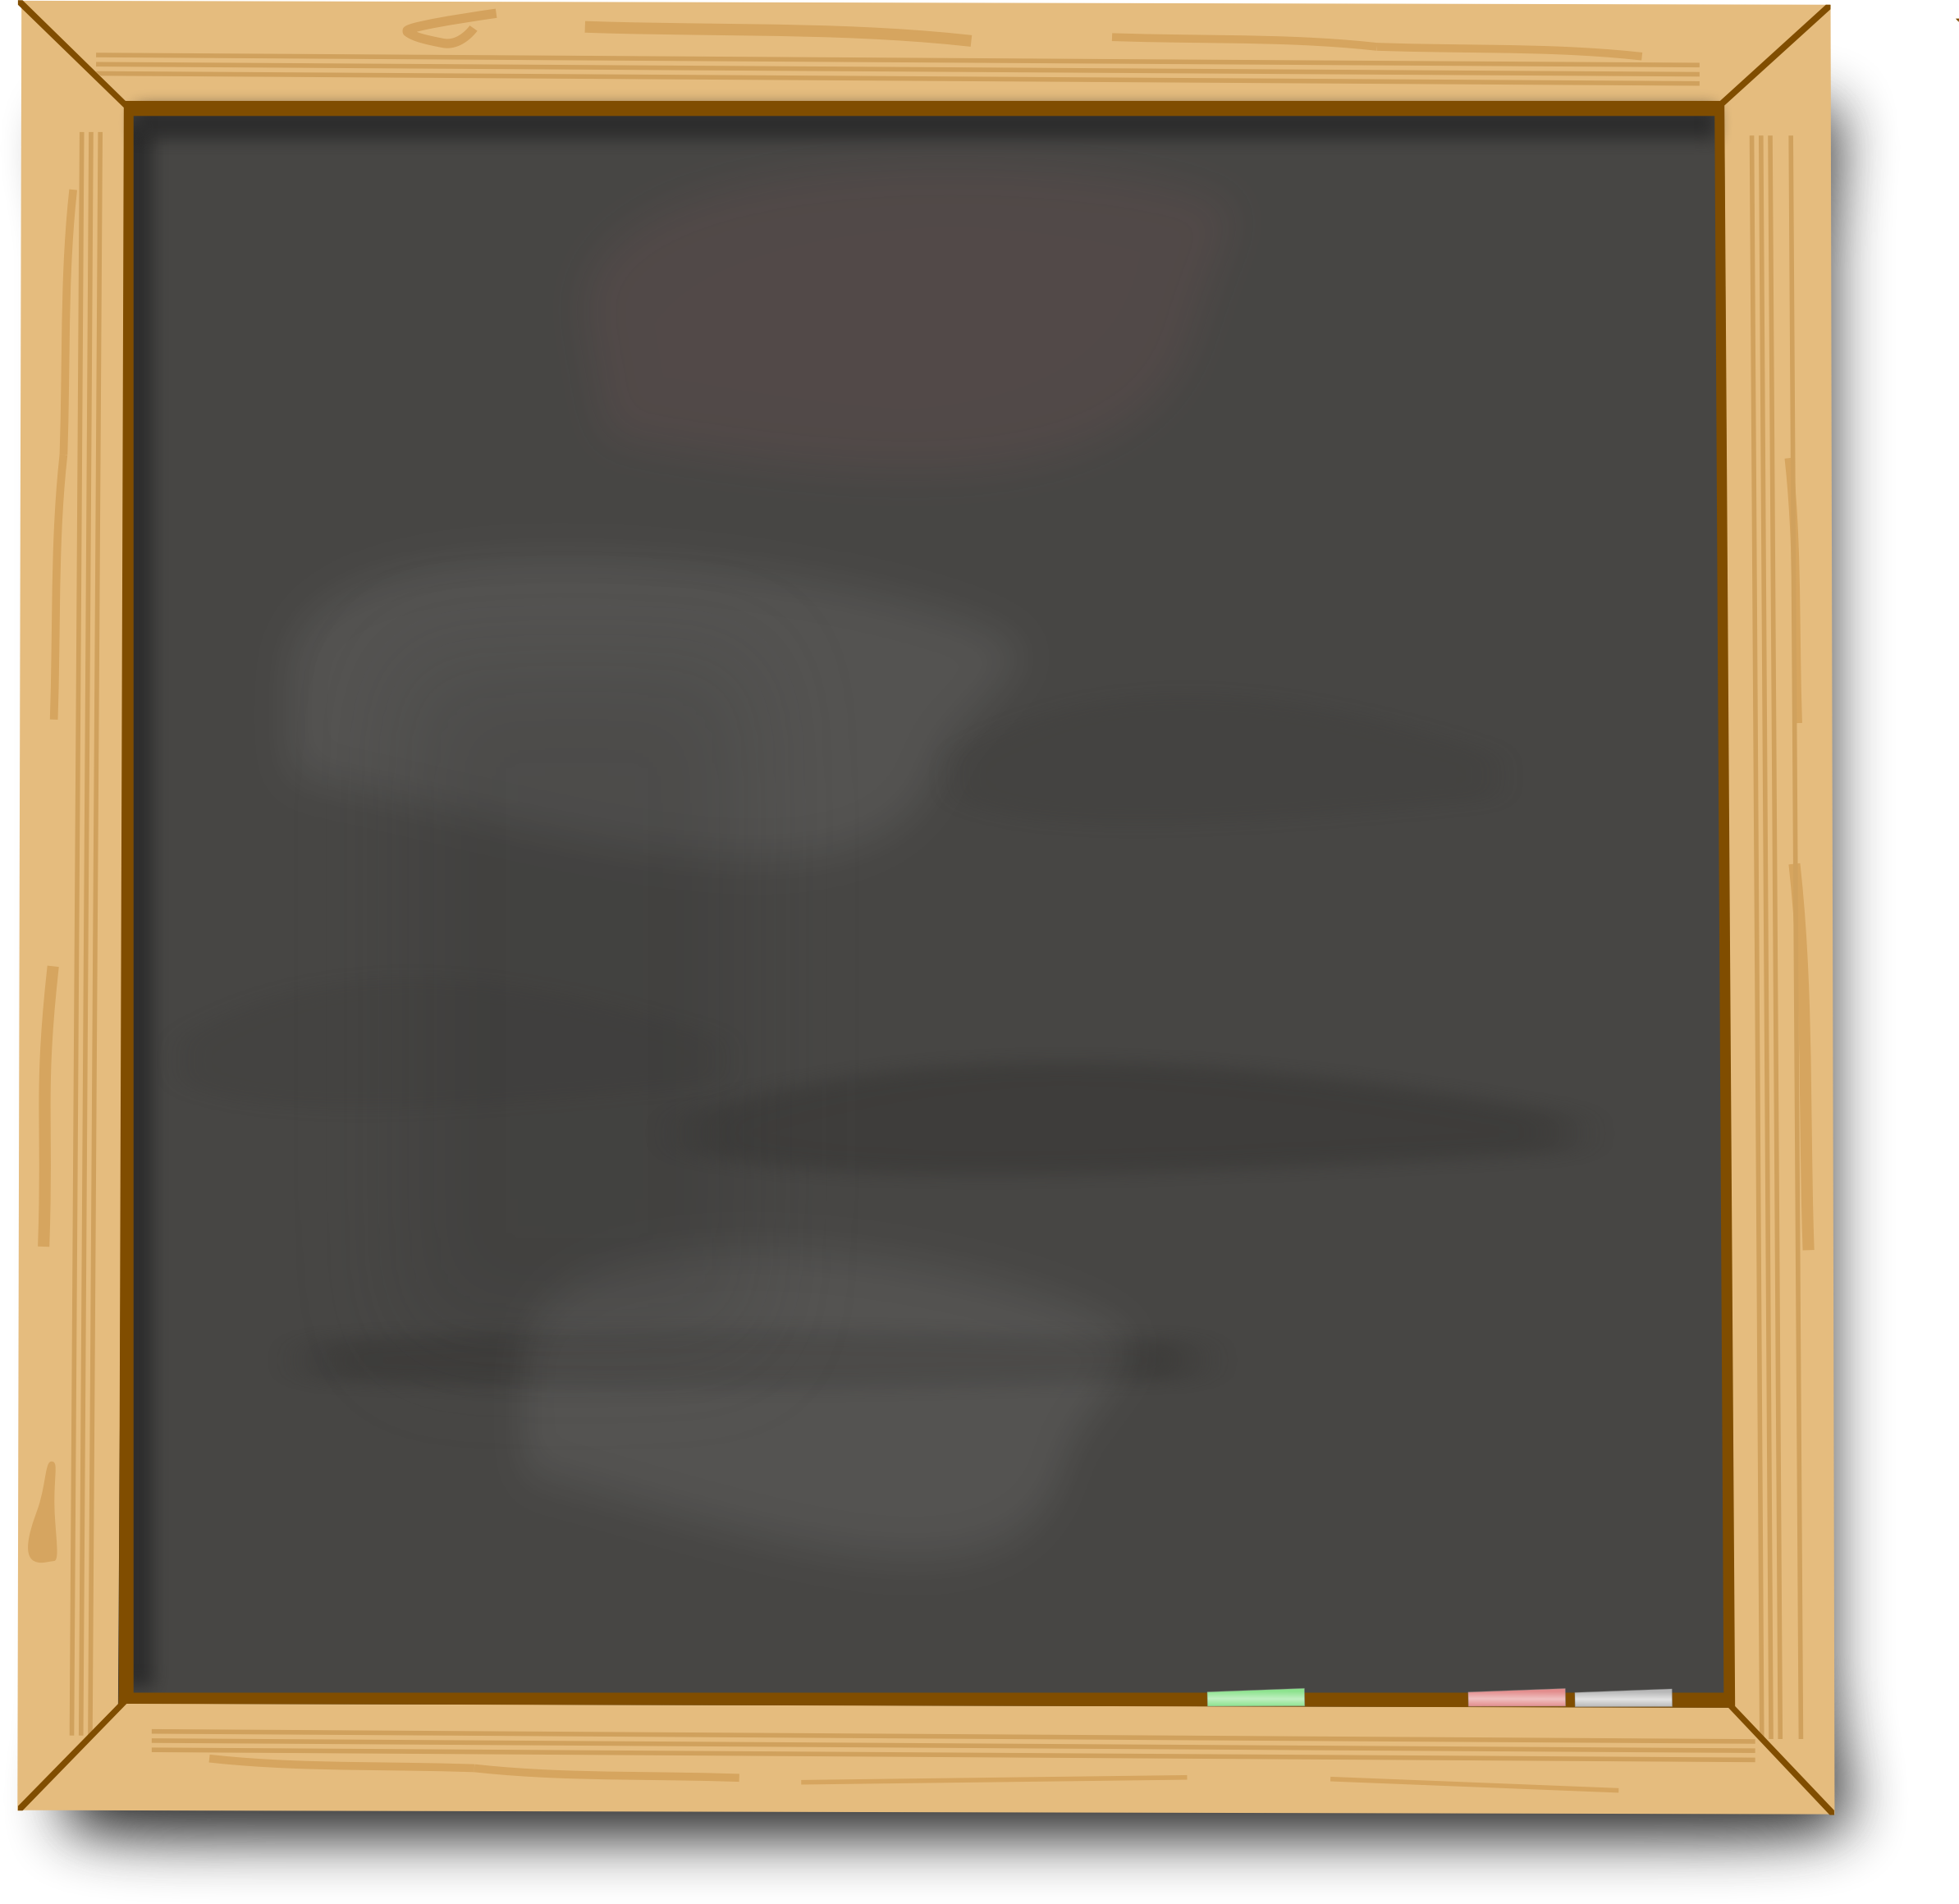 Blank chalk board by Firkin